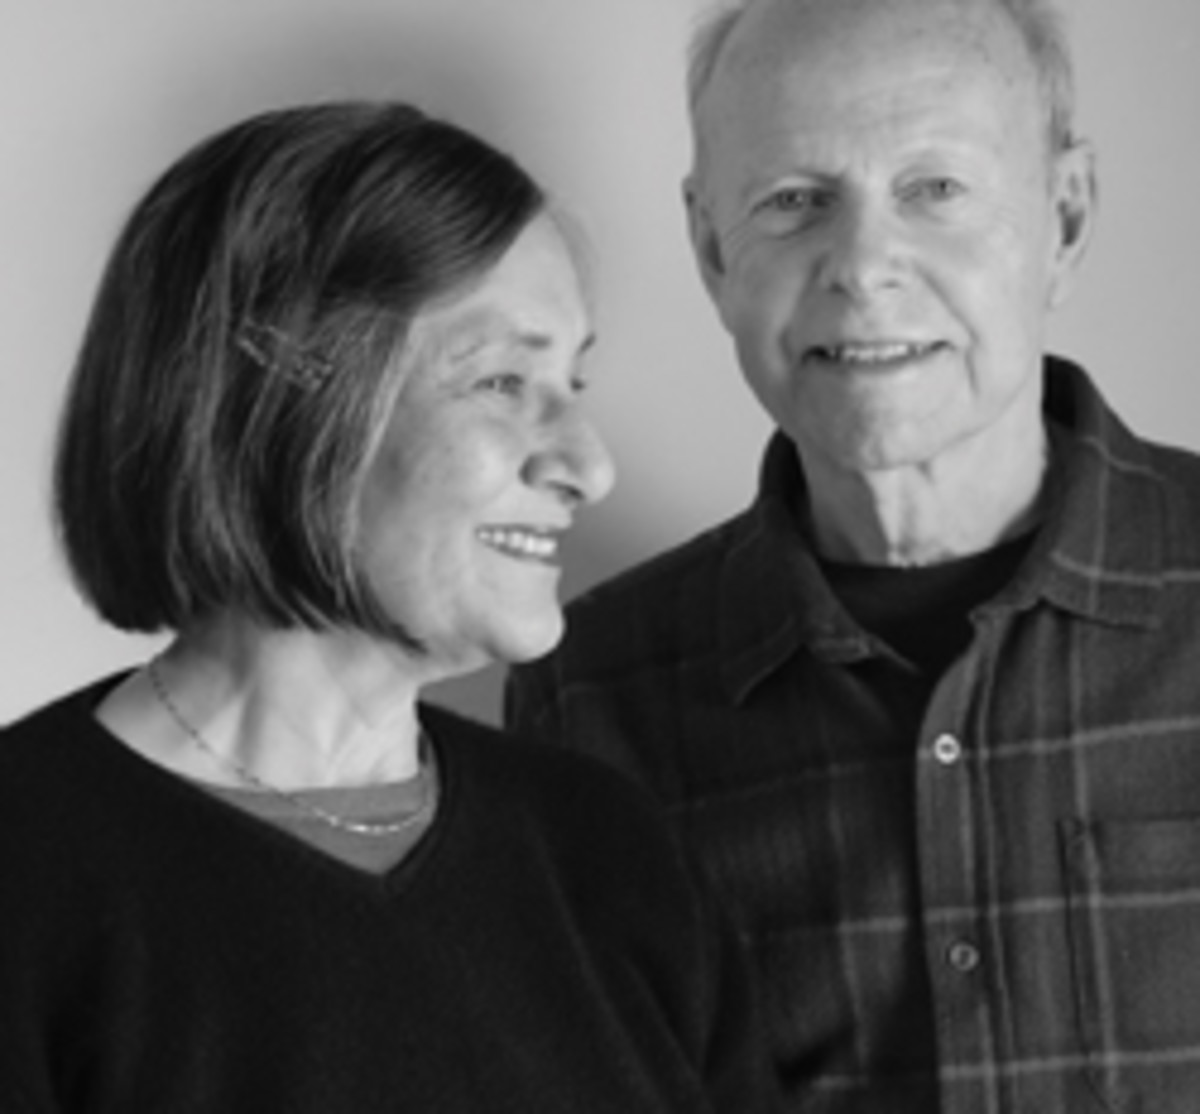 Bebe and Warren Johnson will be recognized as this year's Award of Distinction Honorees by The Furniture Society.